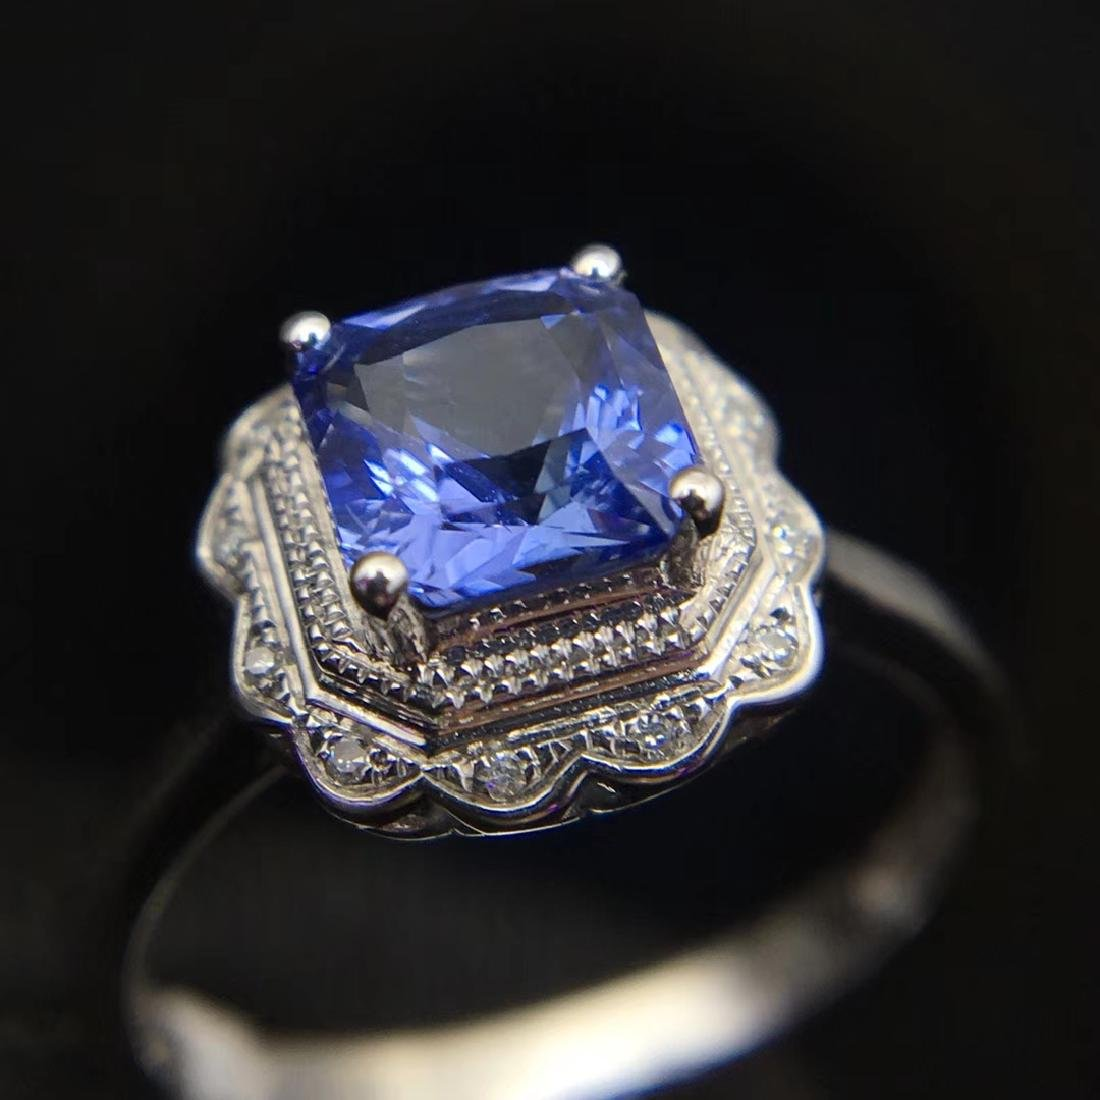 1.24ct Sapphire Ring in 18kt White Gold - 4